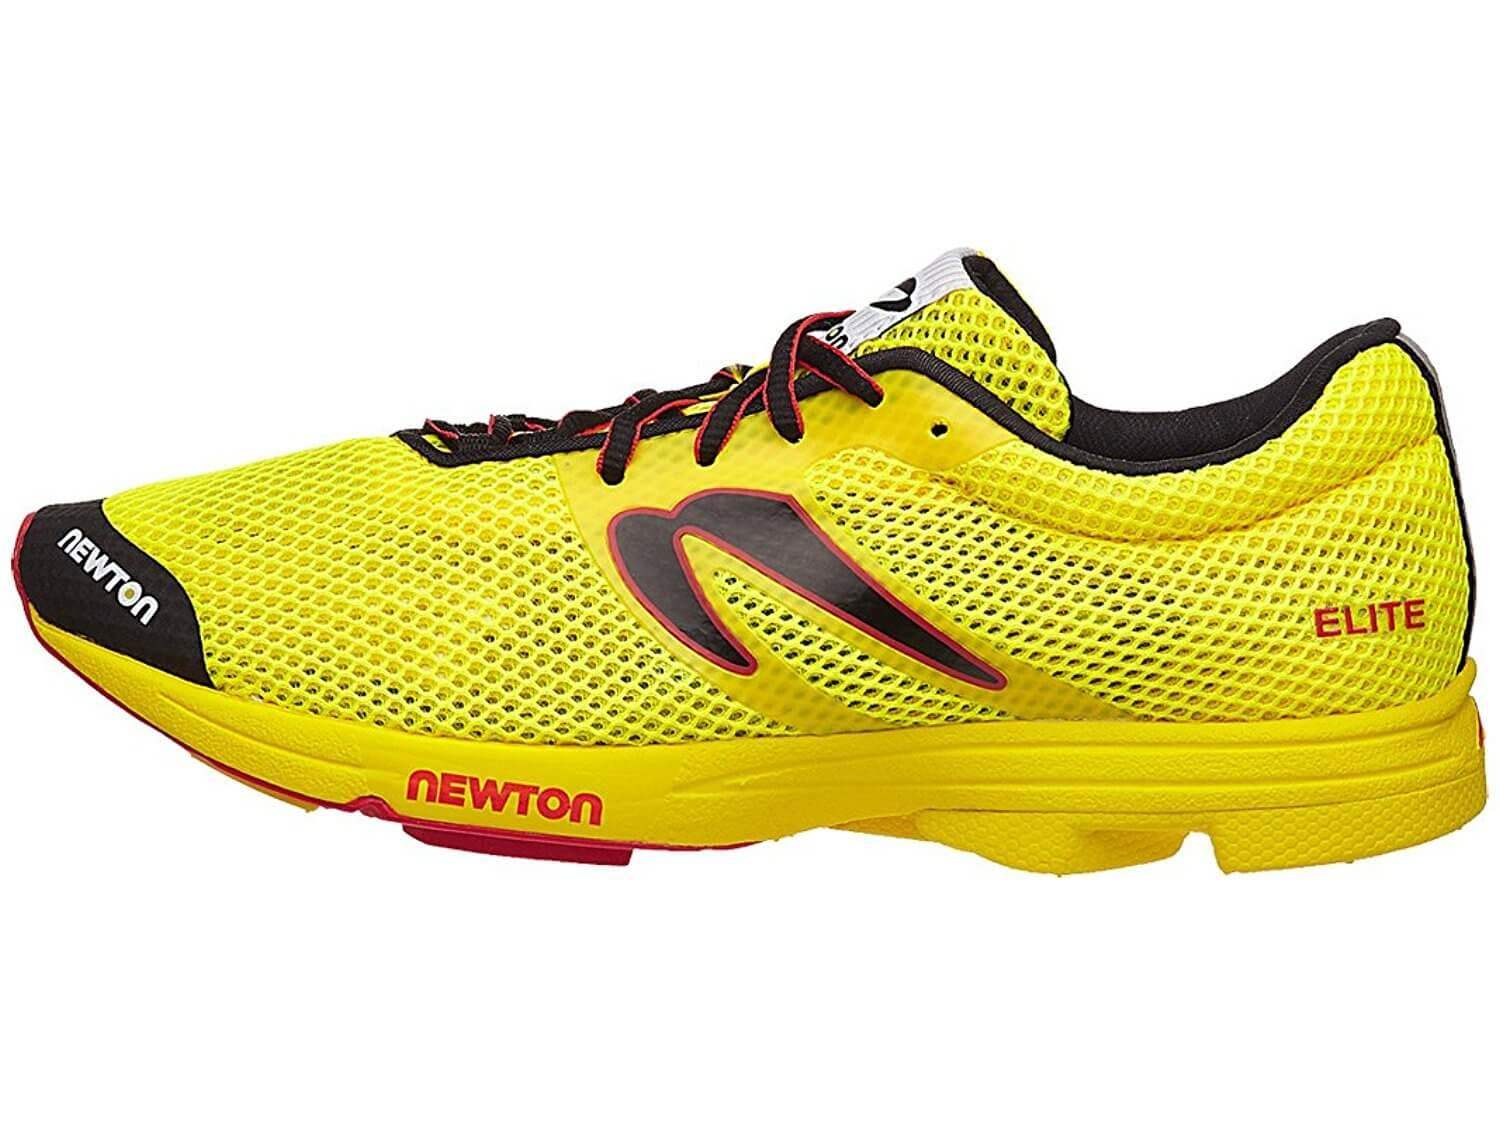 the Newton Distance Elite is a sleek, lightweight, minimalist running shoe that helps runners obtain their racing goals